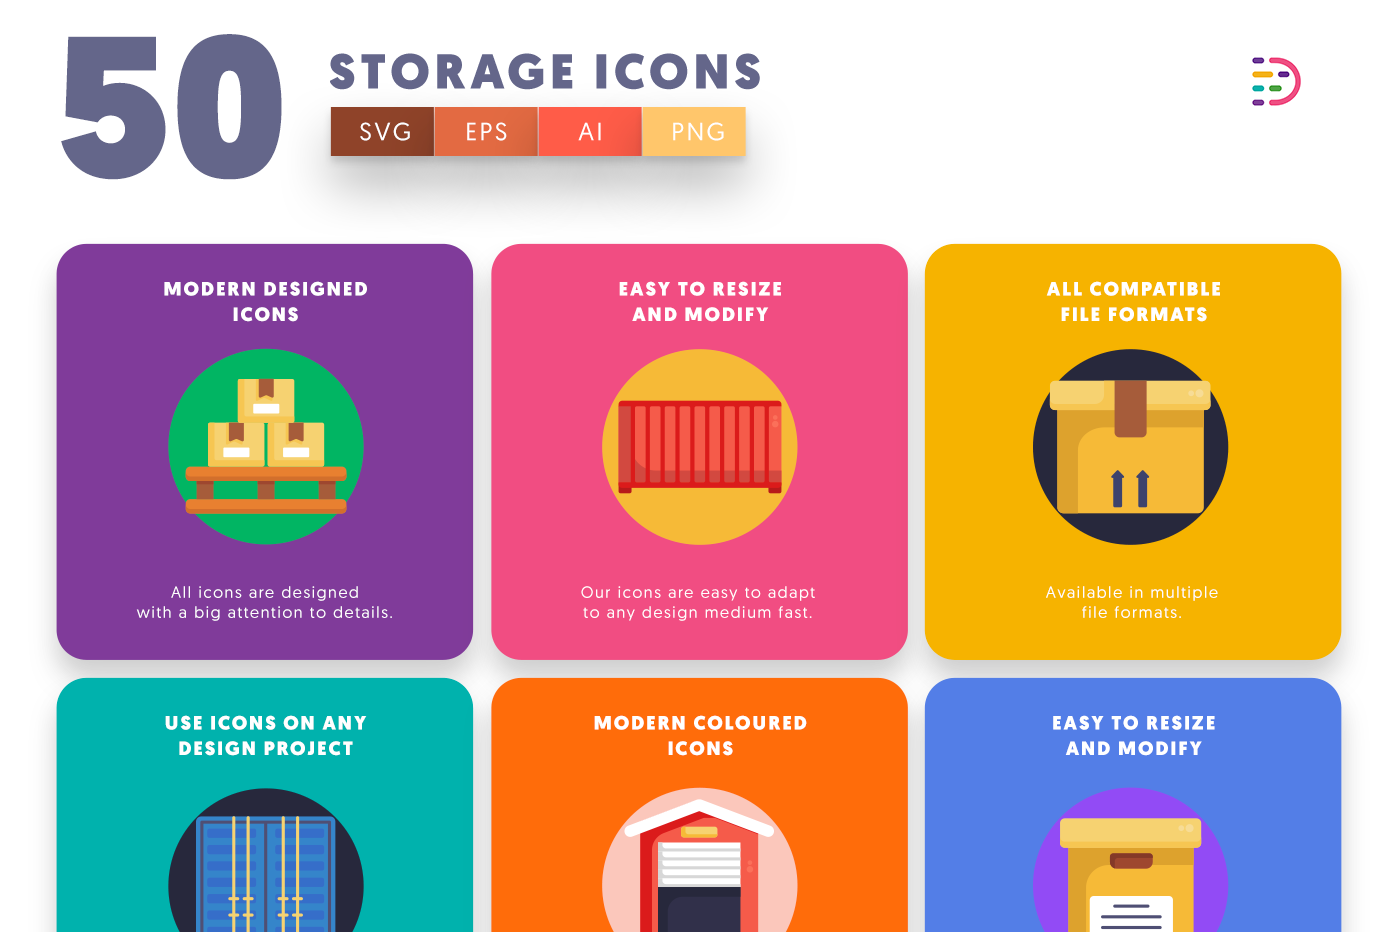 50 Storage Icons with colored backgrounds